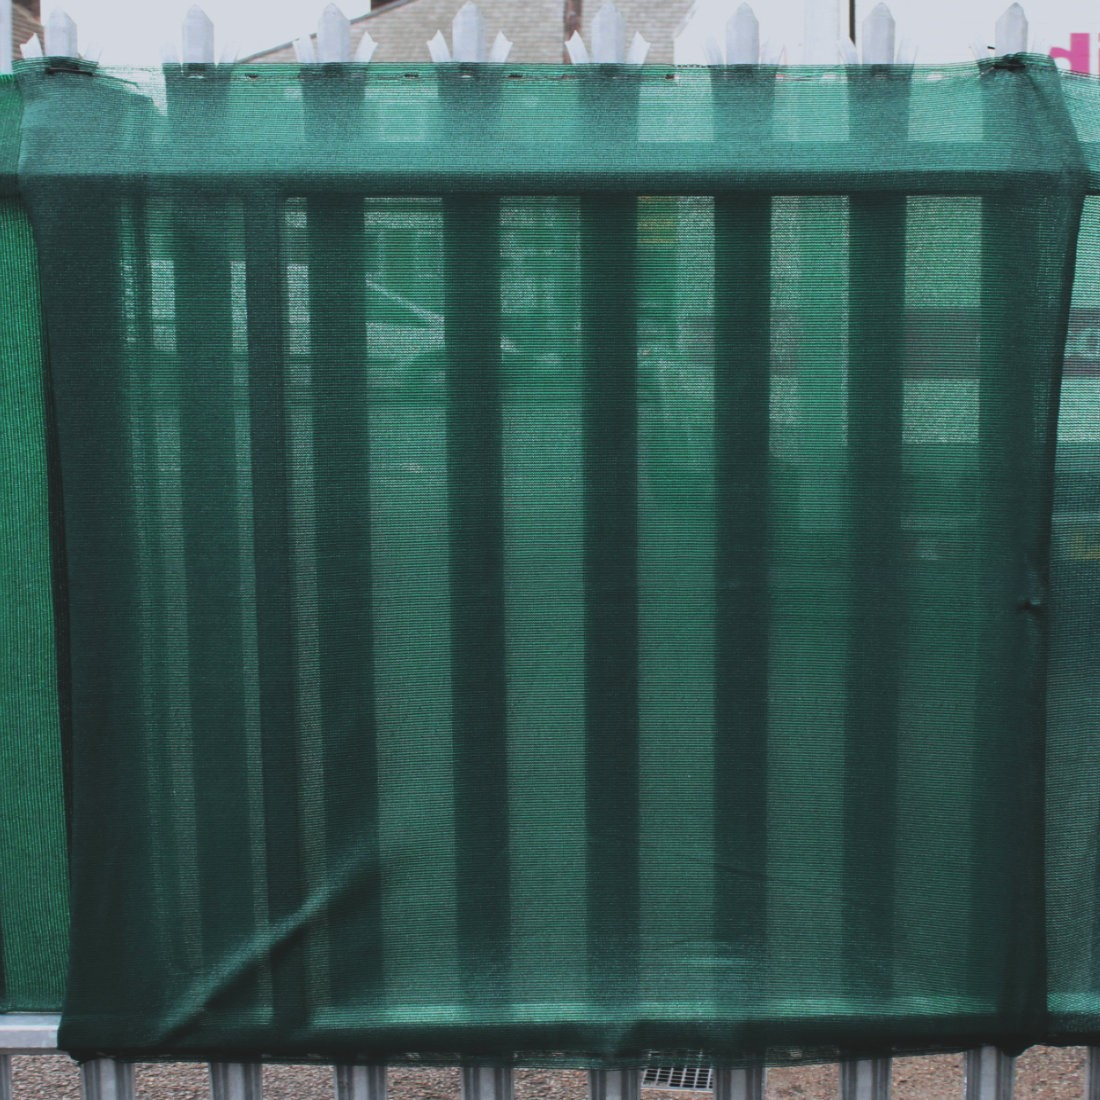 95% Shade Netting also for Privacy Screenng